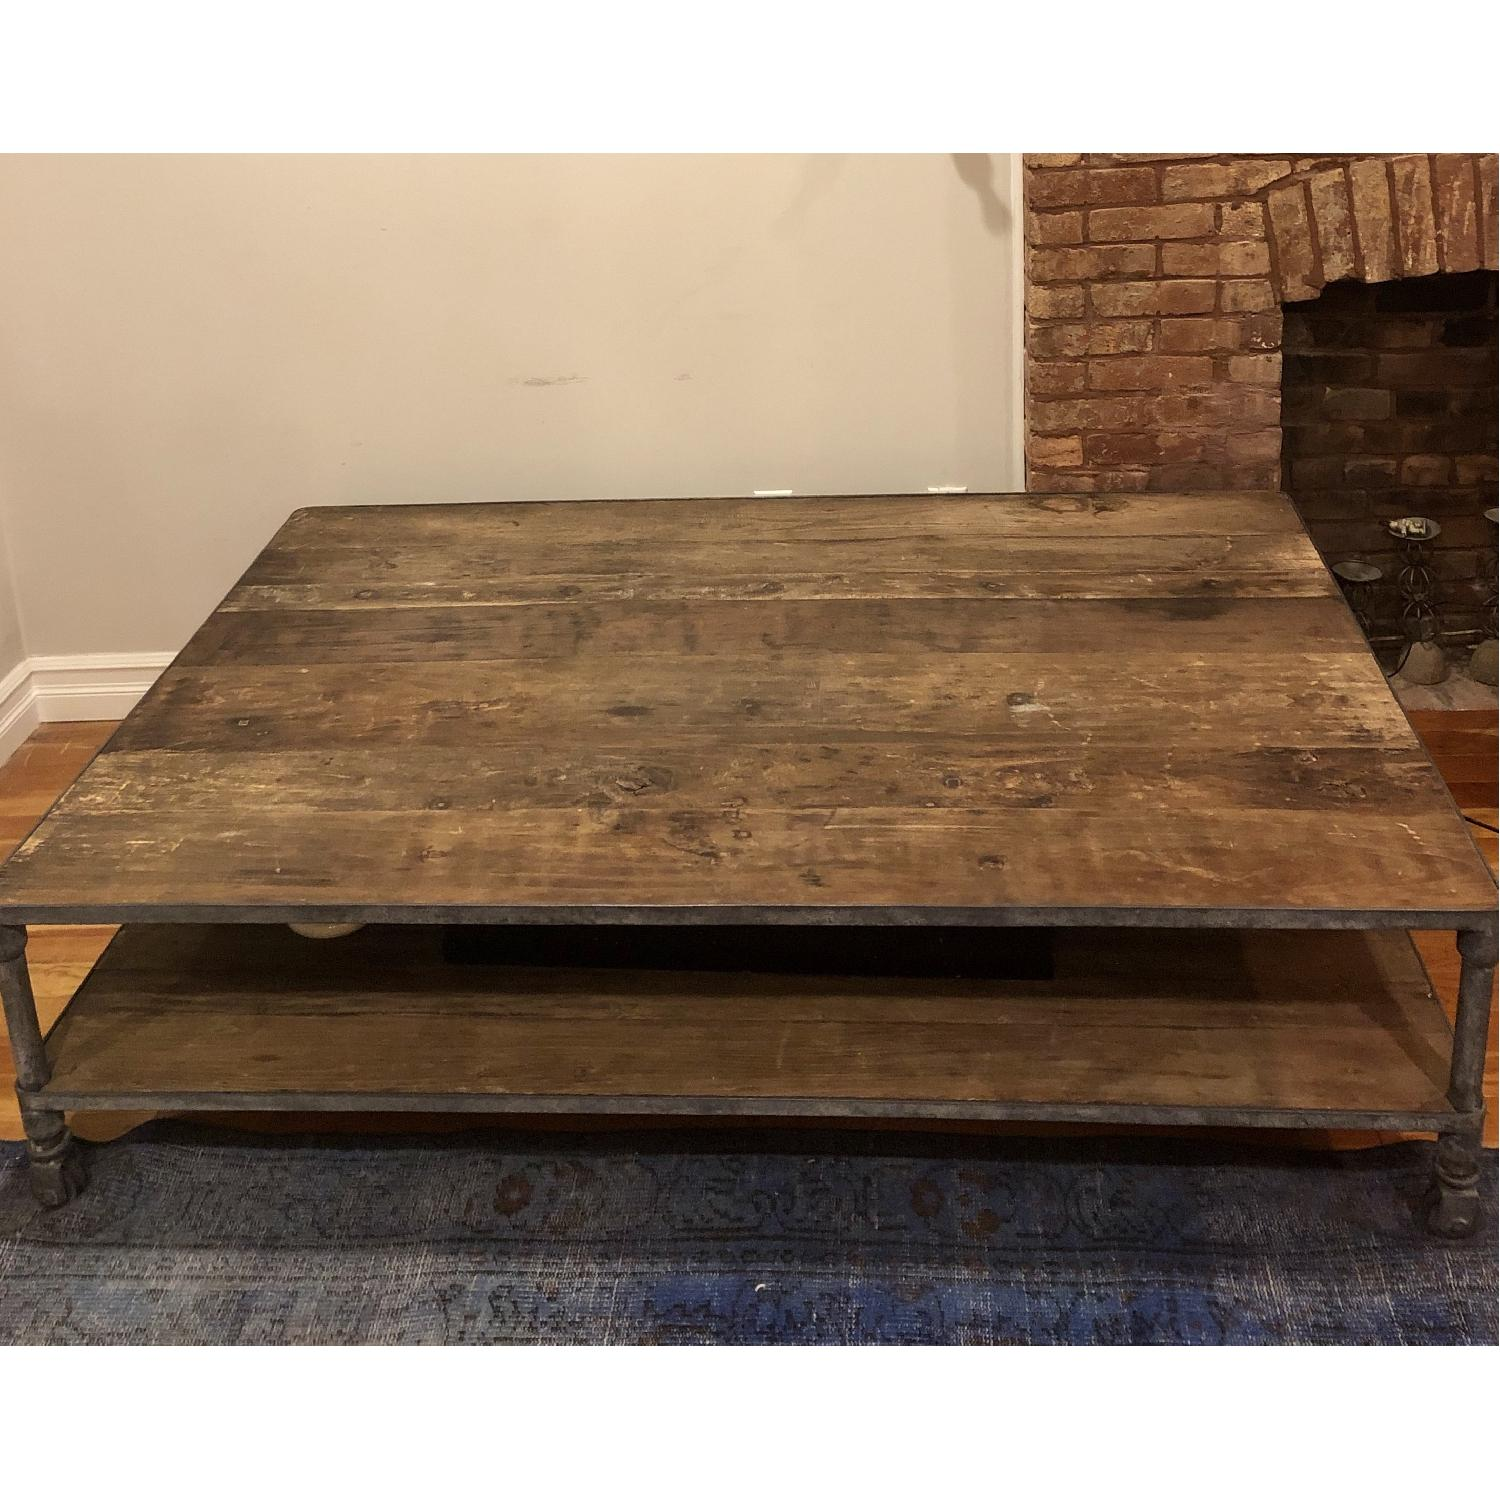 Restoration Hardware Dutch Industrial Coffee Table - image-3